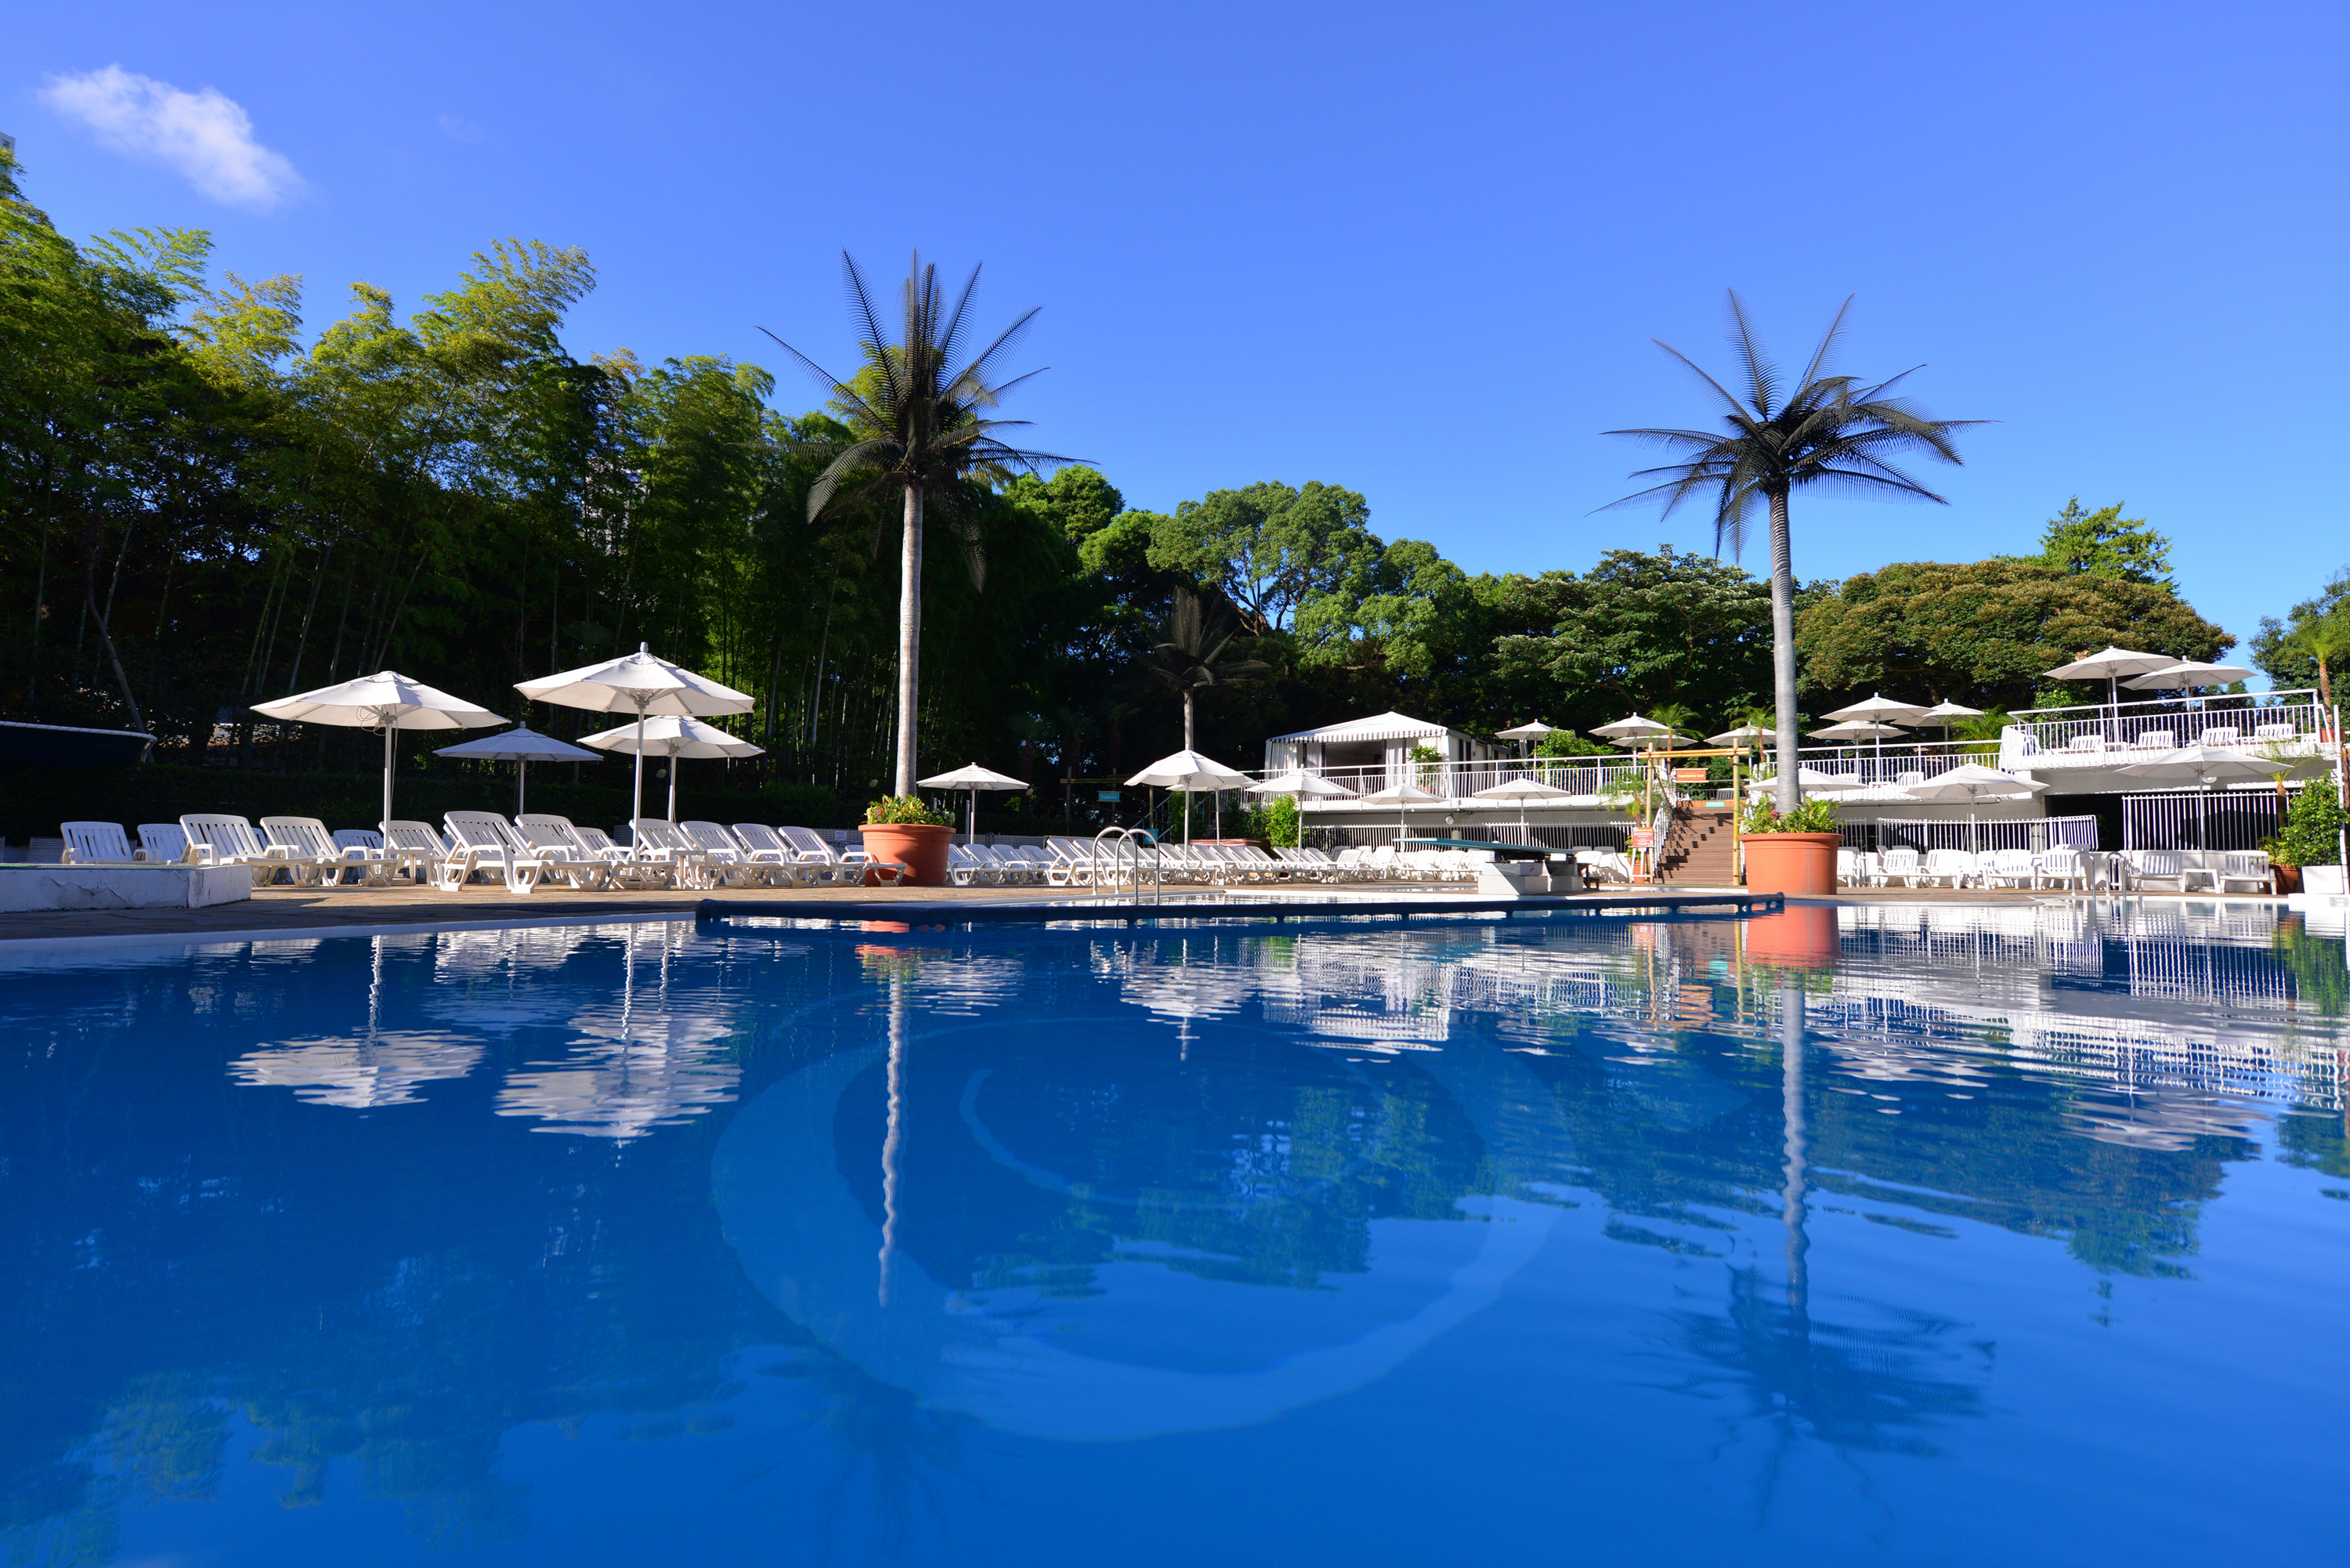 Garden pool at hotel new otani 2015 things to do in tokyo for Garden city pool hours